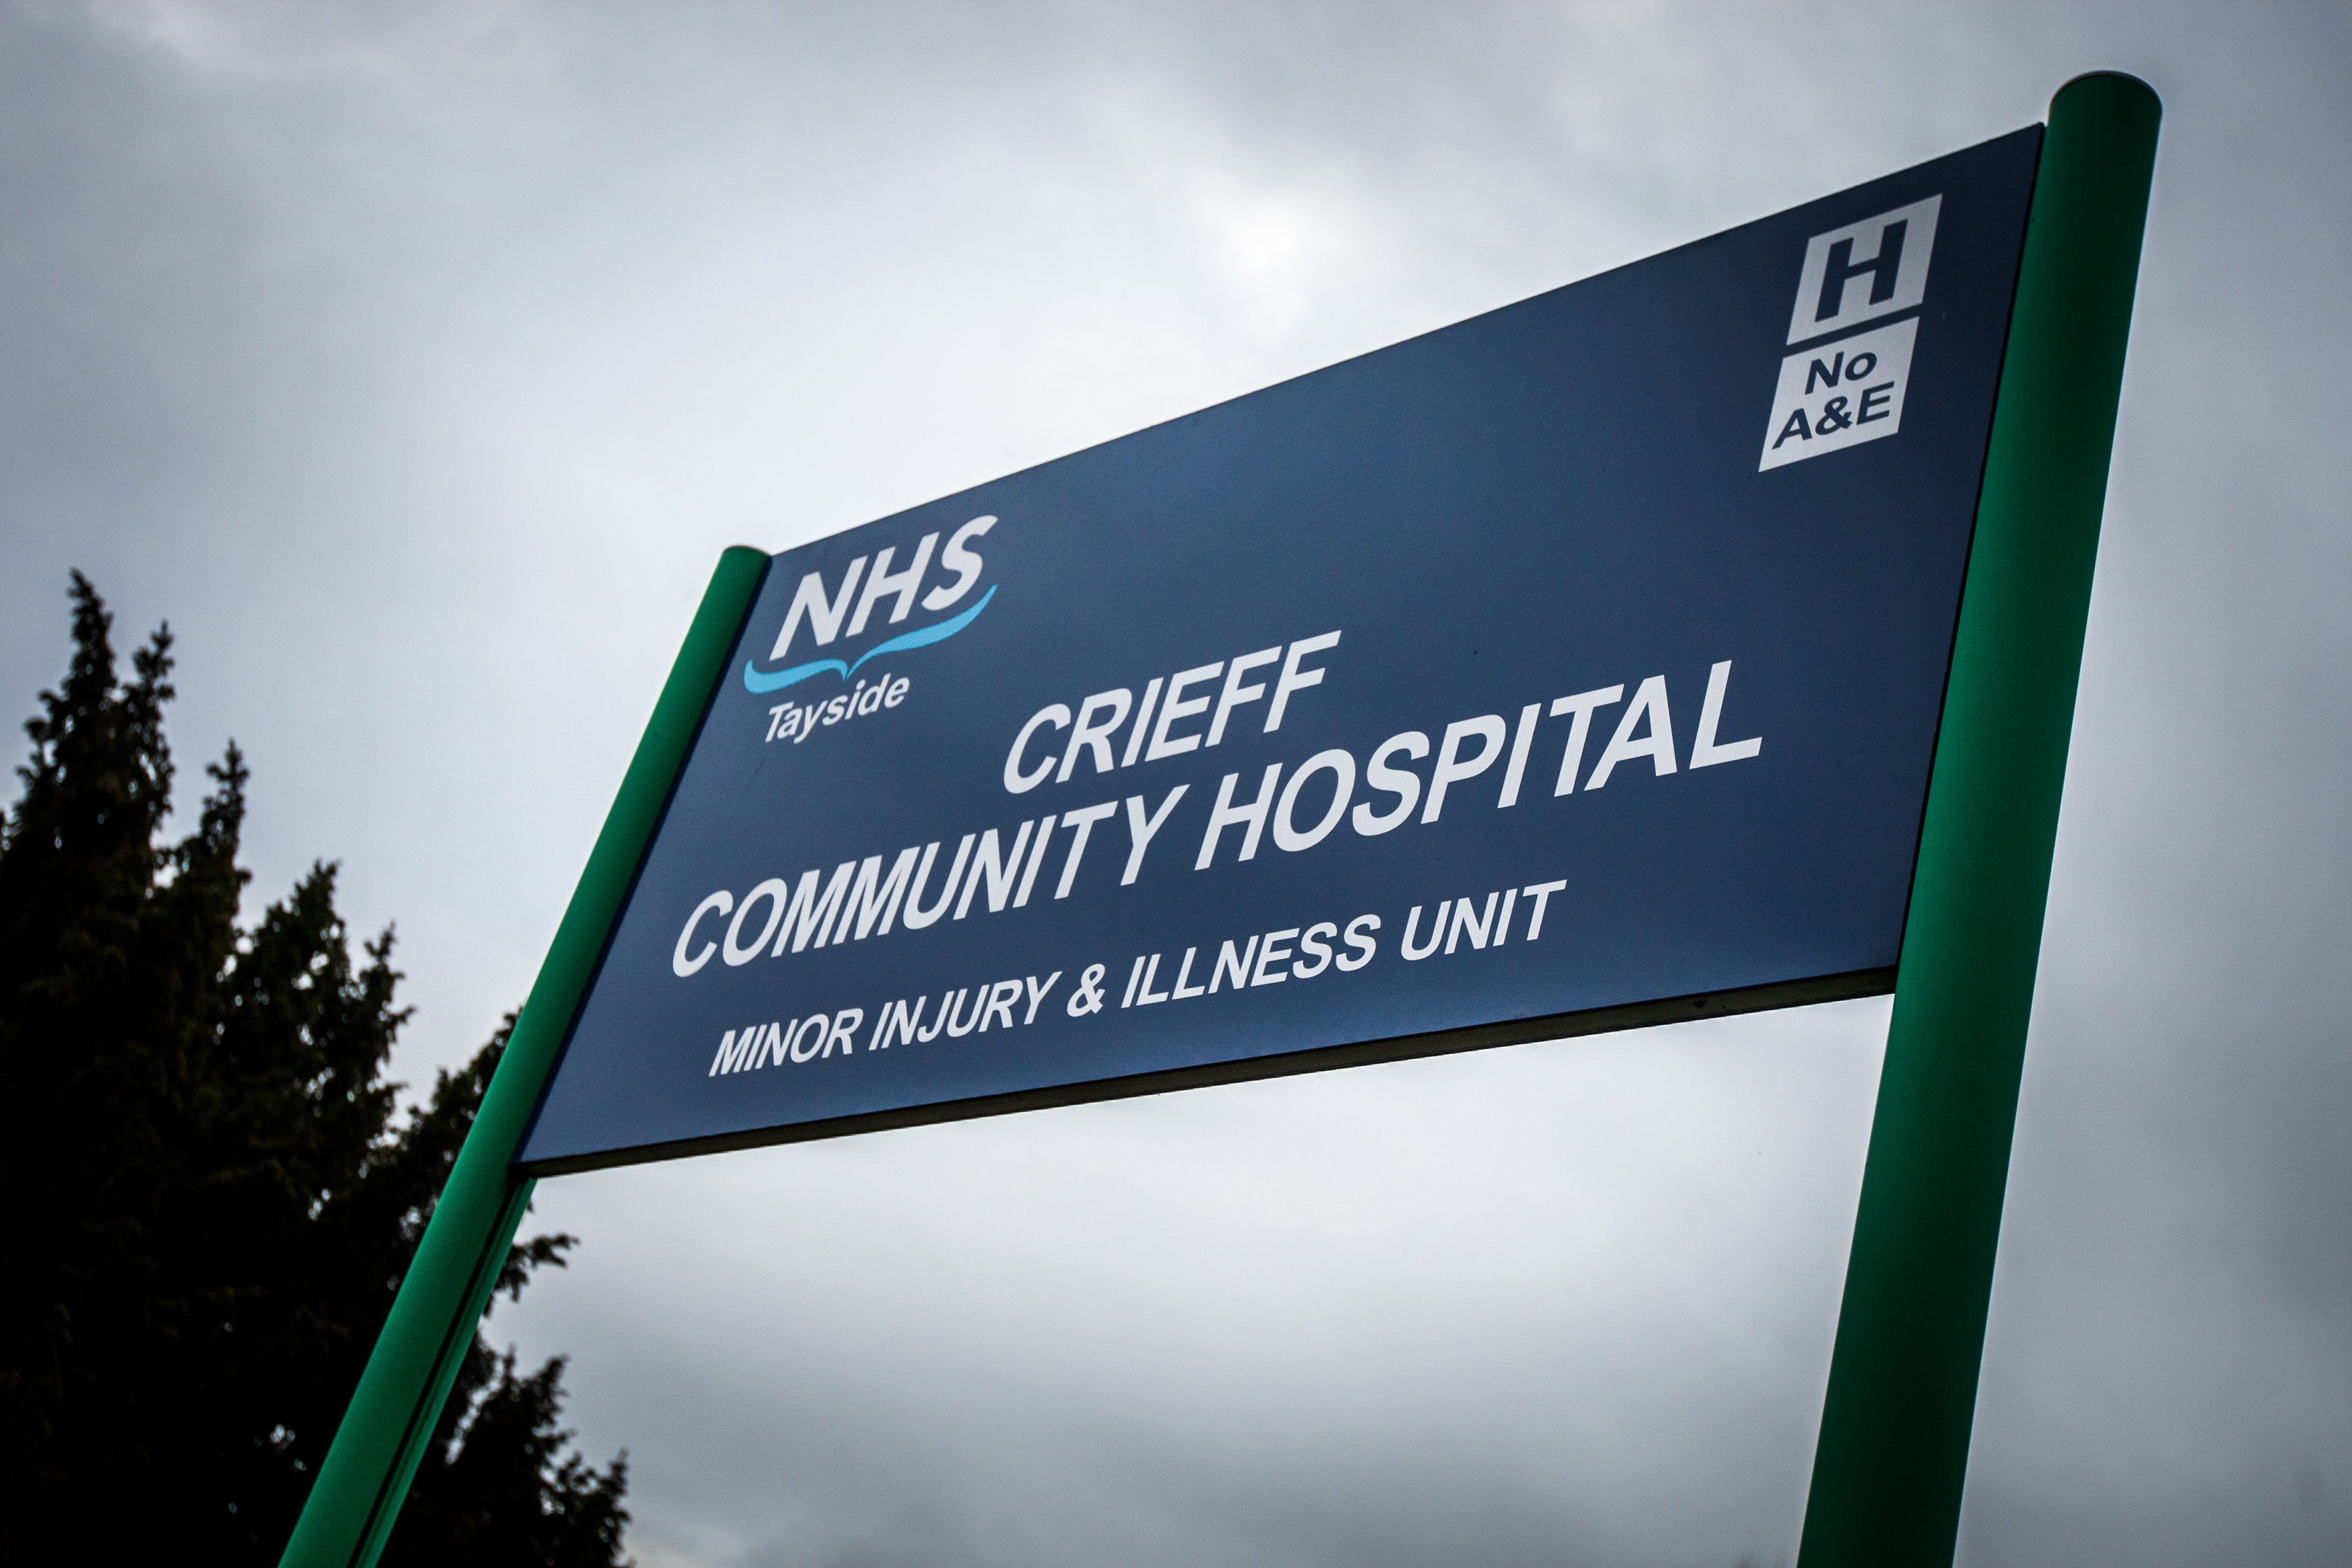 Crieff Community Hospital. The minor injury and illness unit has been closed due to a shortage of staff.